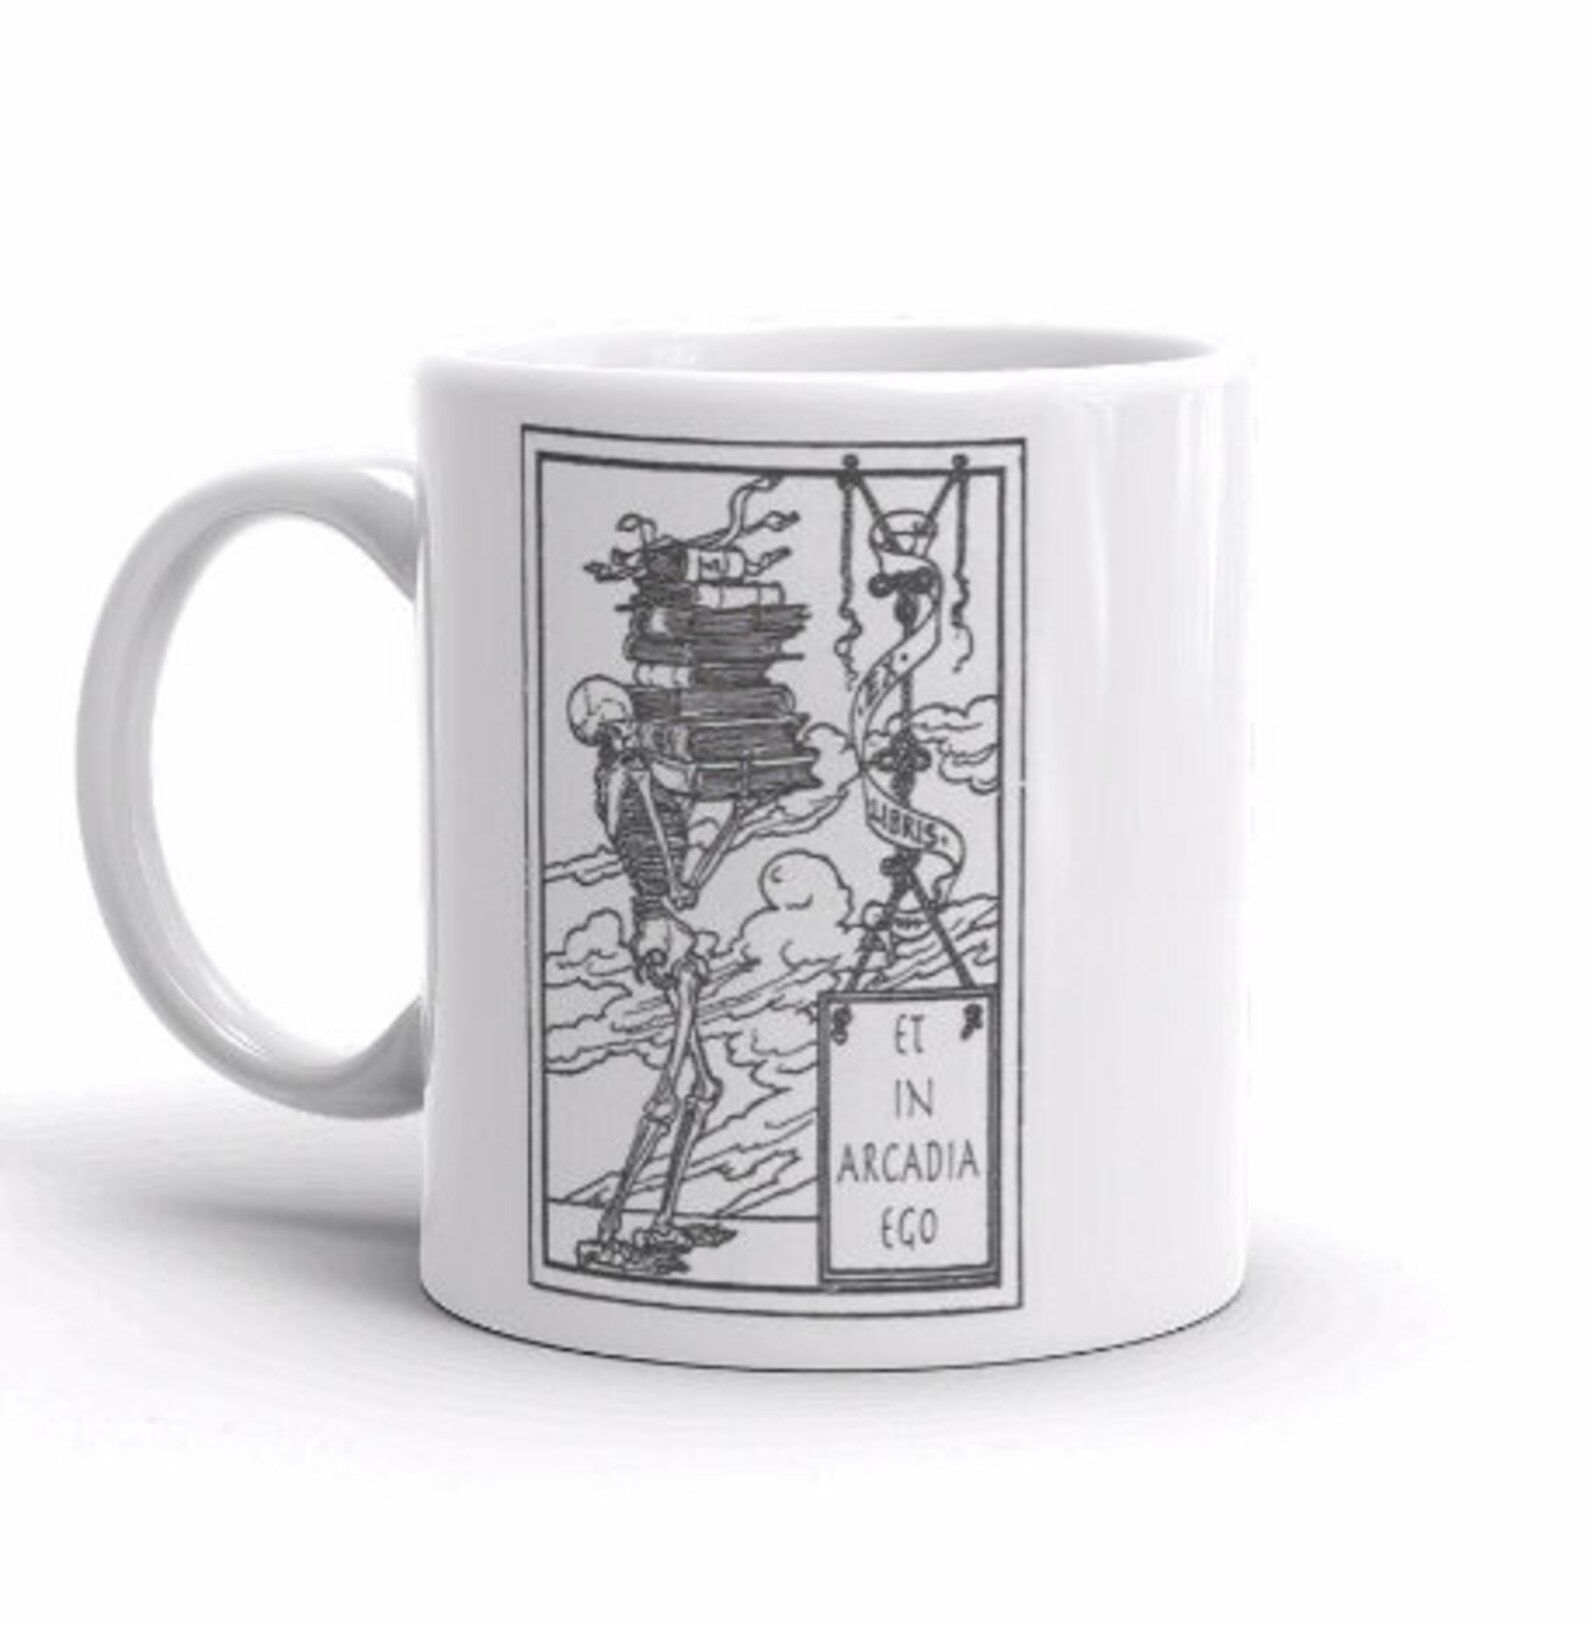 """Image of a white mug. The design on the mug features a skeleton holding books, with a sign reading """"et in arcadia ego."""""""